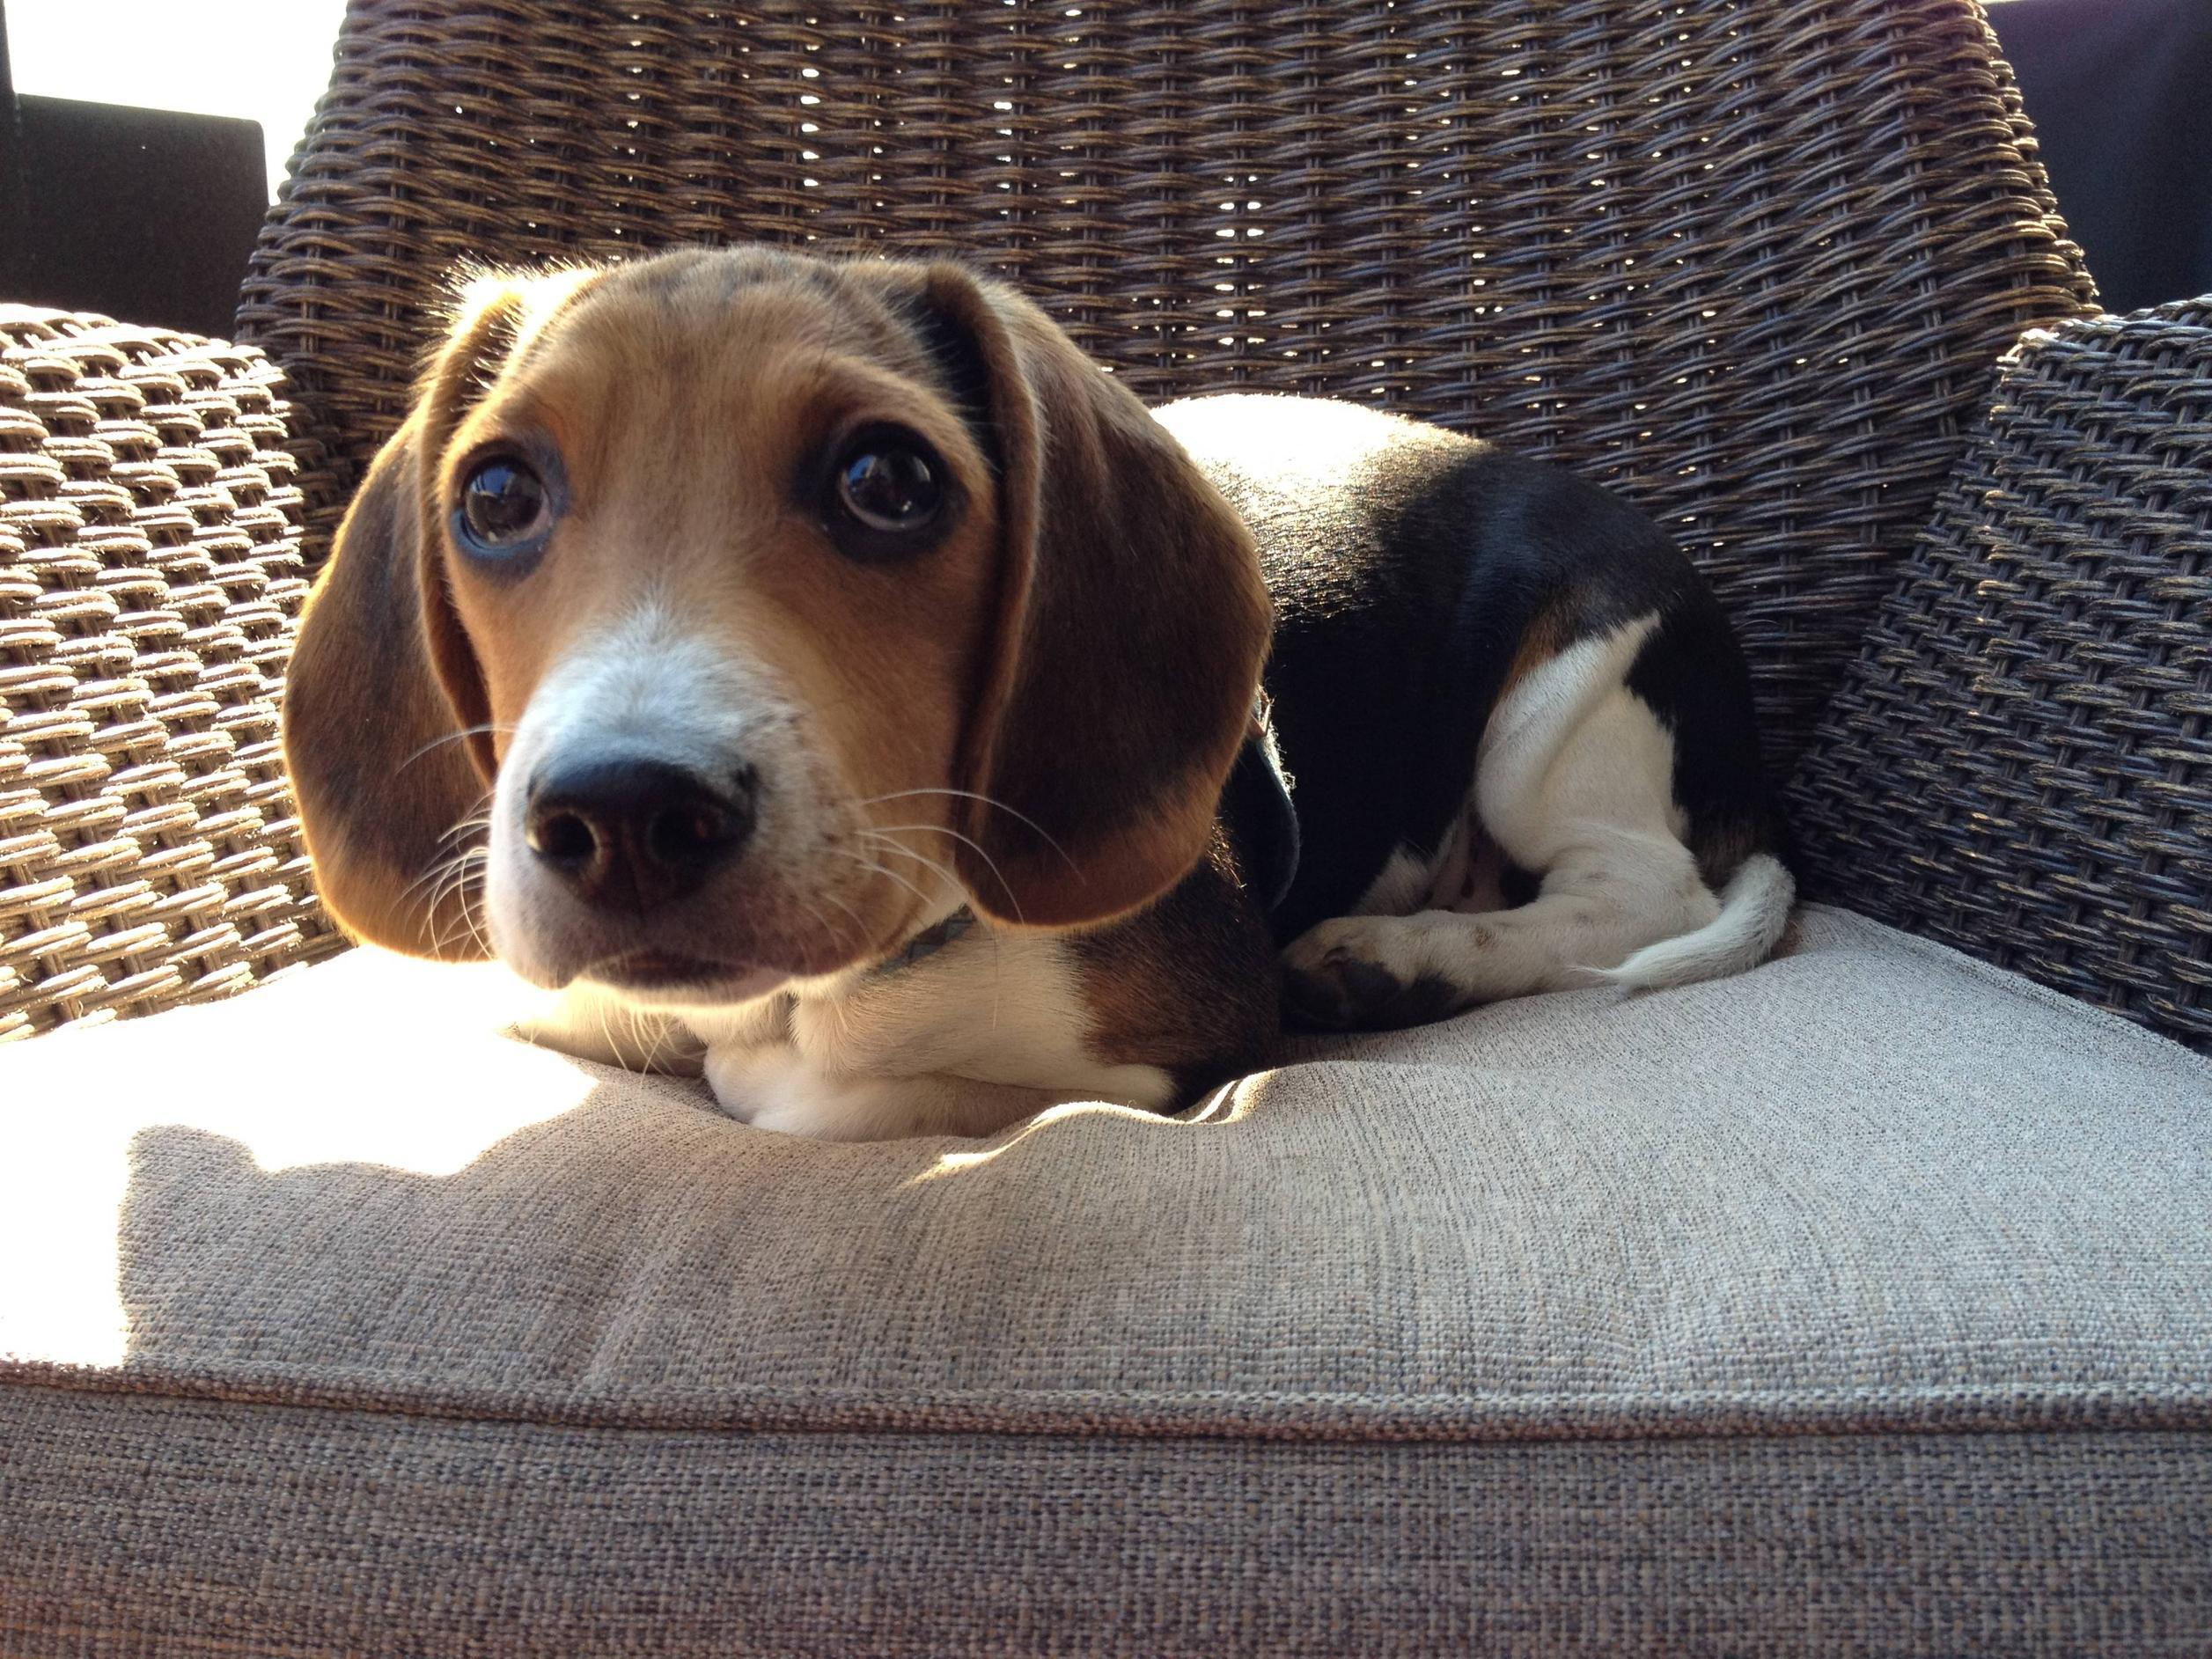 Animals___Dogs_Funny_beagle_dog_on_chair_049963_